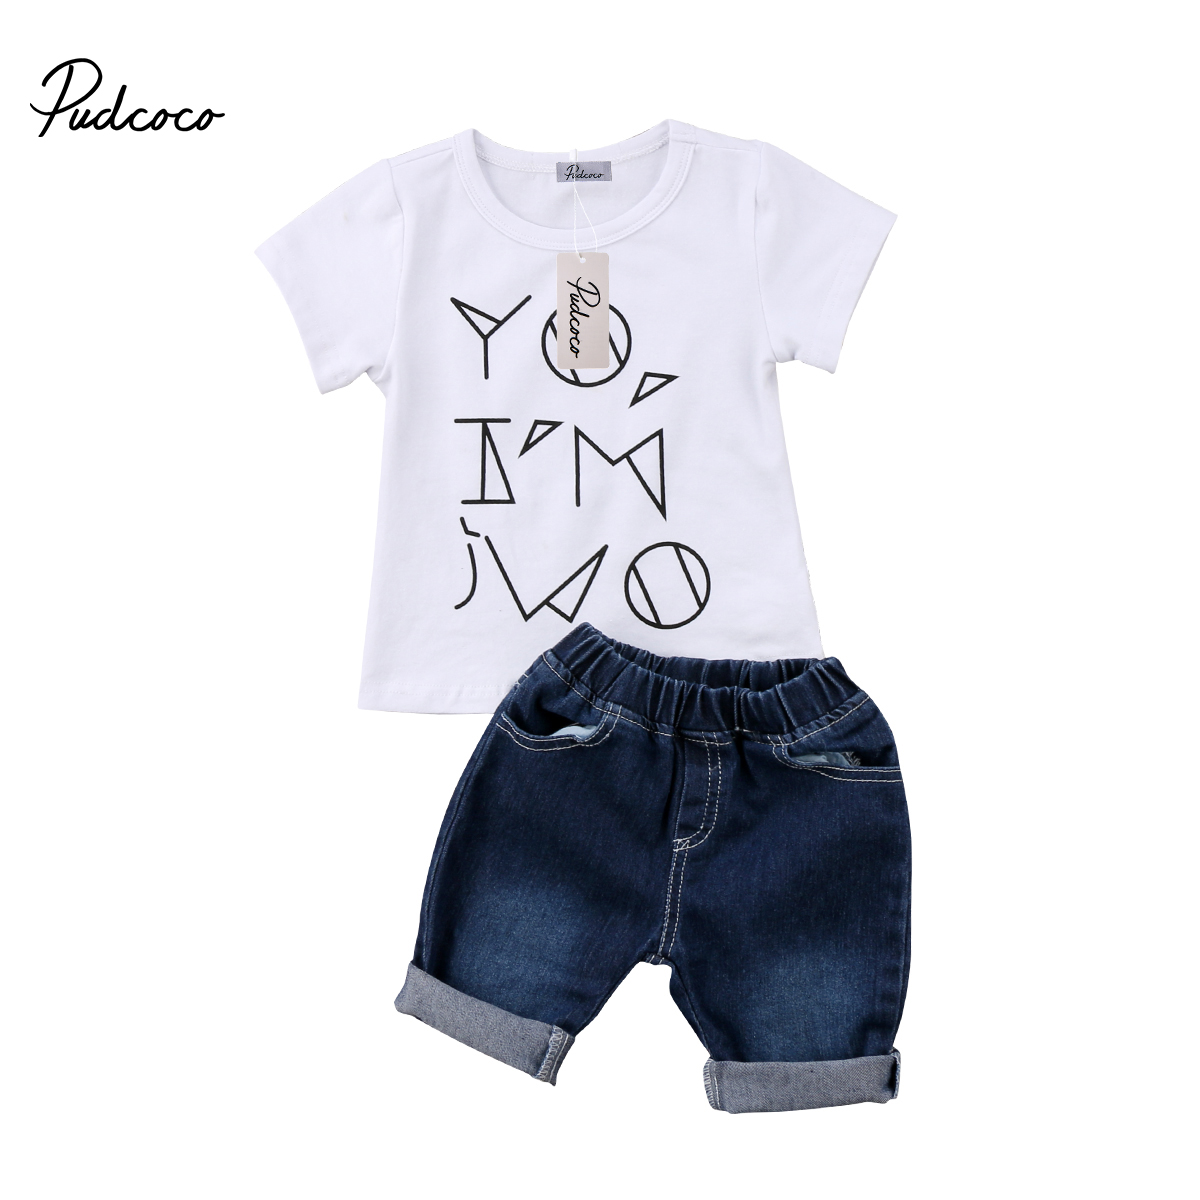 Pudcoco 2PCS Toddler Baby Kids Boys Denim Outfits Summer Short Sleeve T- shirt Tops+ Jeans Shorts Clothing Set cheecivan family matching outfits summer fashion colorful letter print short sleeve t shirt for toddler mother one piece dress